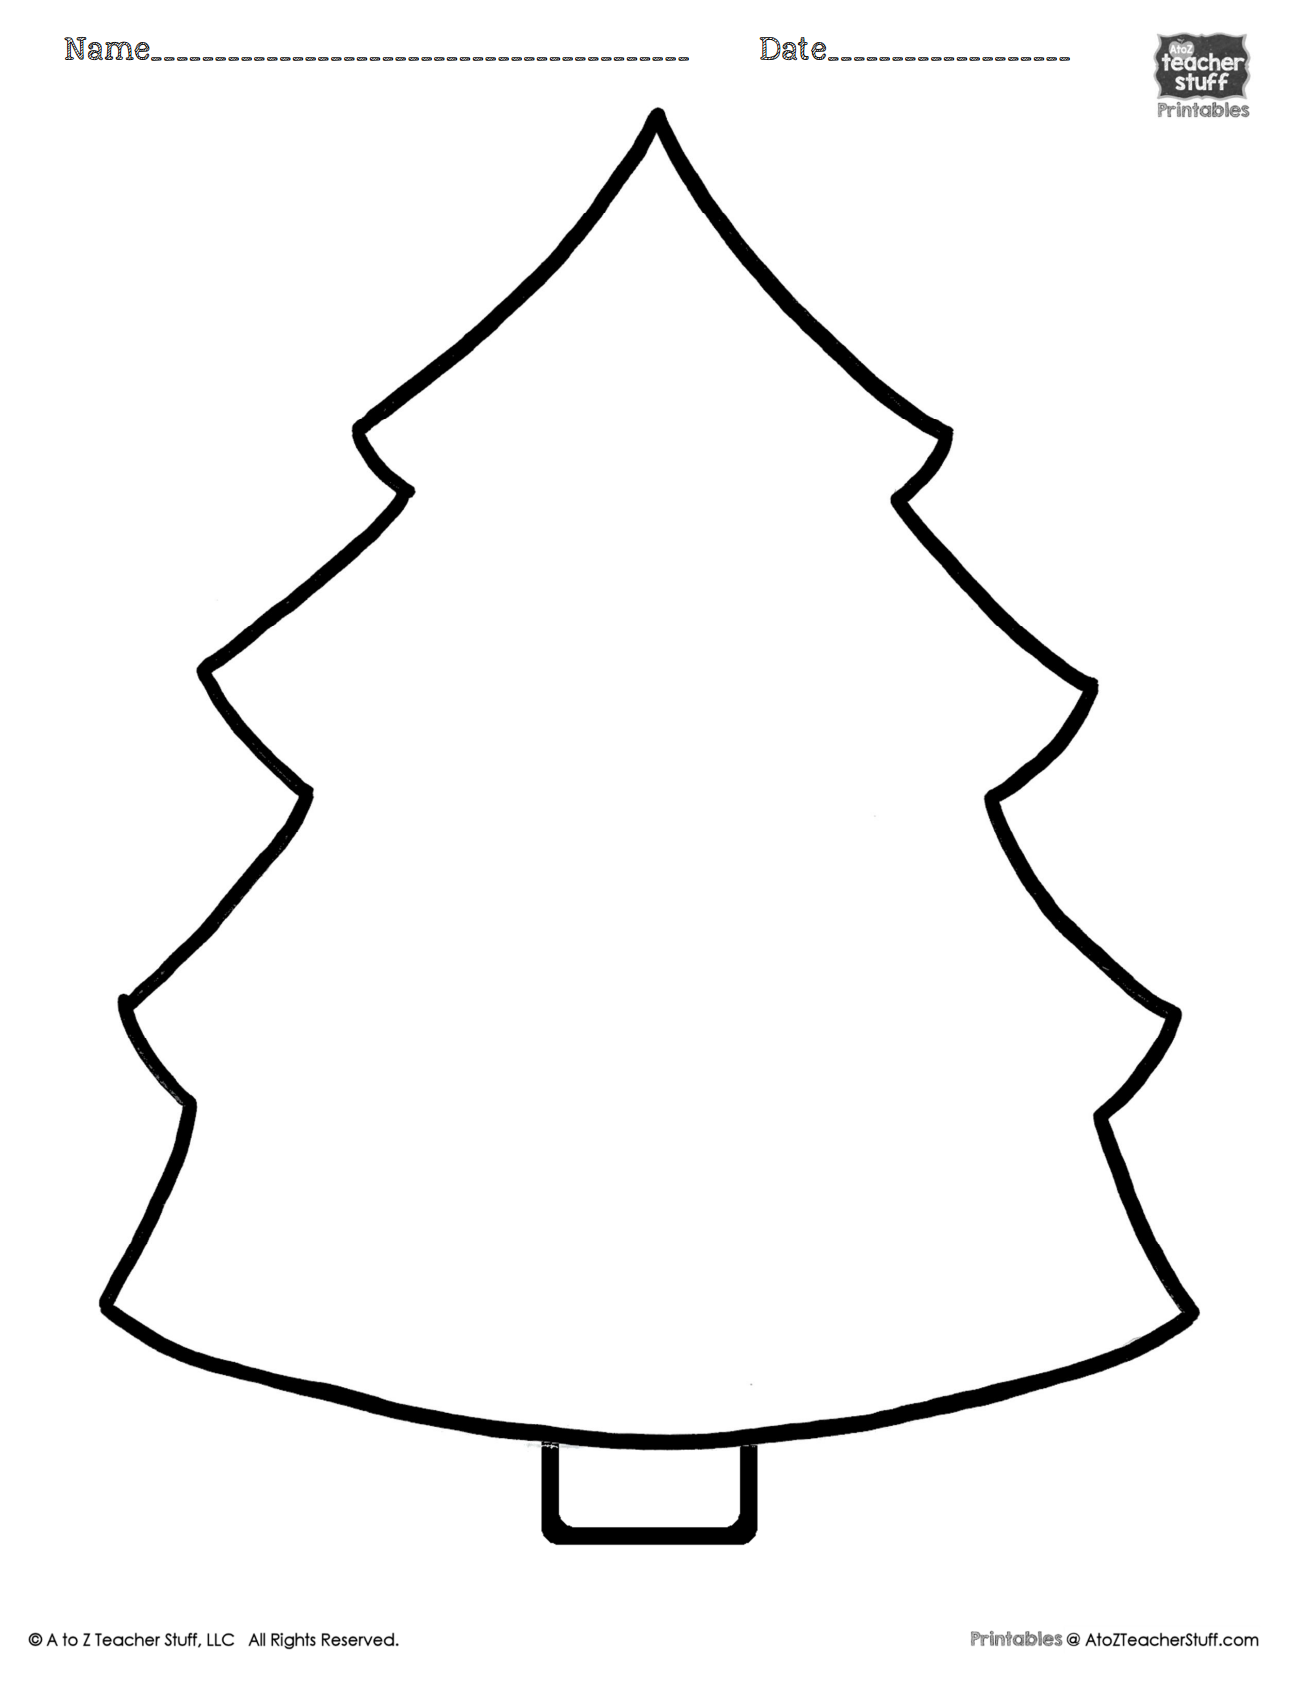 here is a printable christmas tree page you can use as a